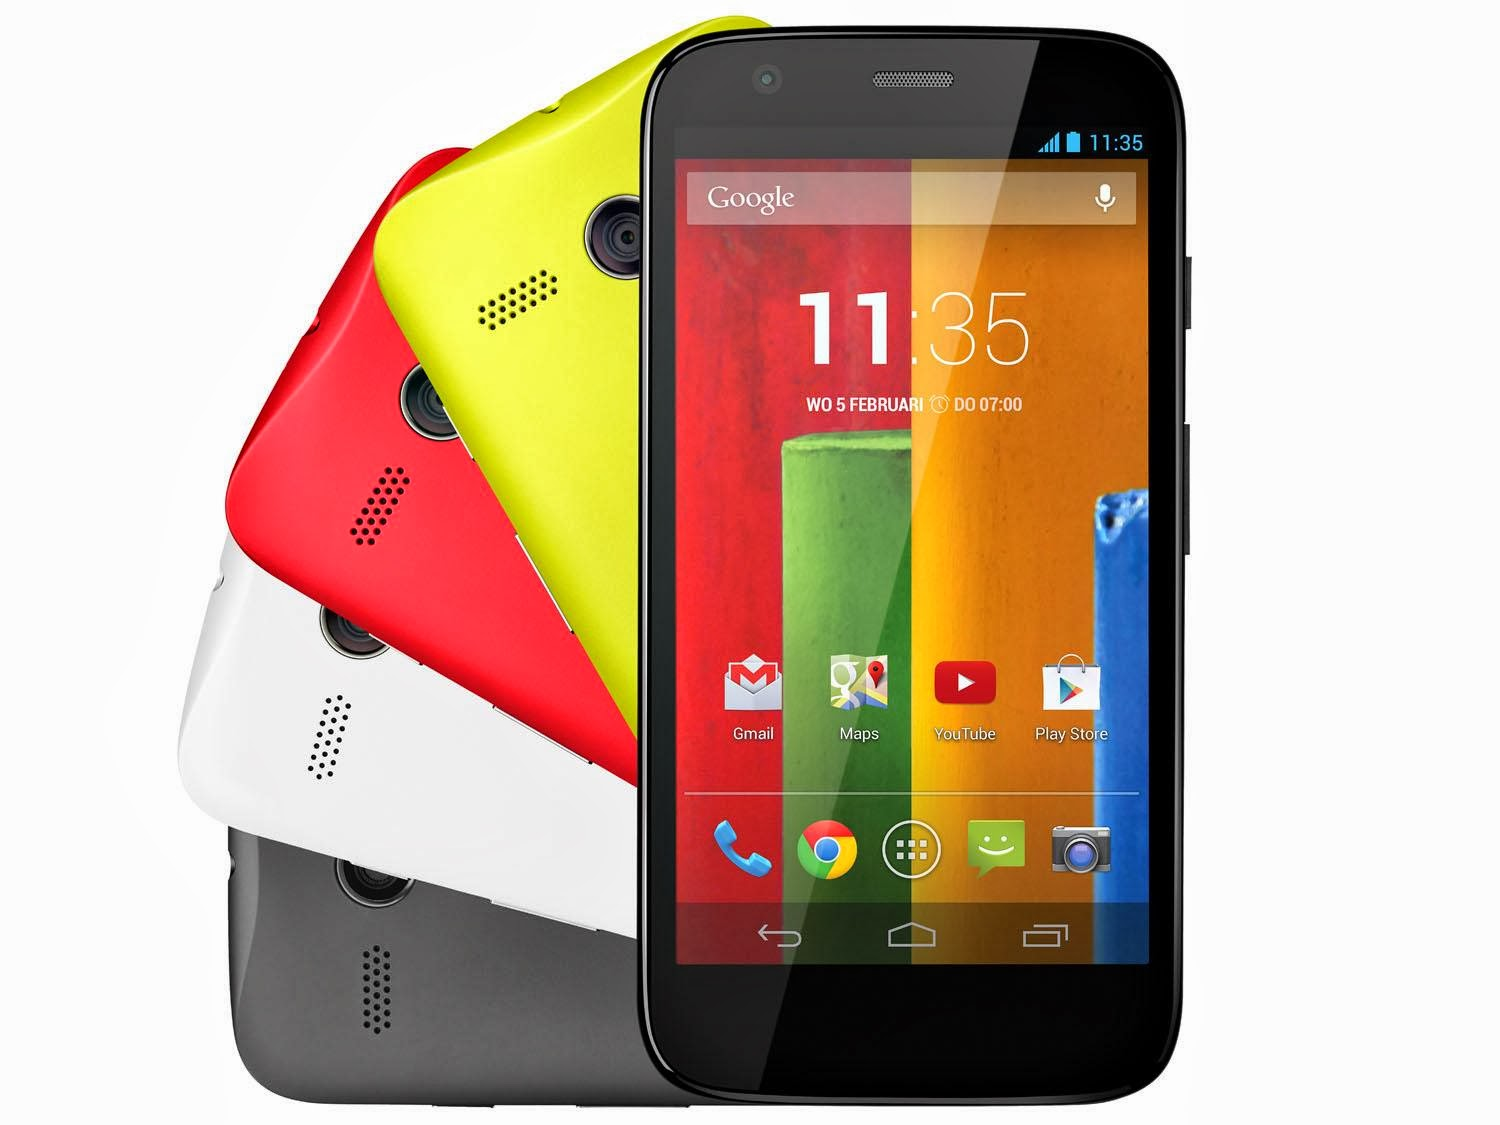 imagens do celular moto g - Motorola Moto G Colors Dual 2 Chips 16GB Black Friday é